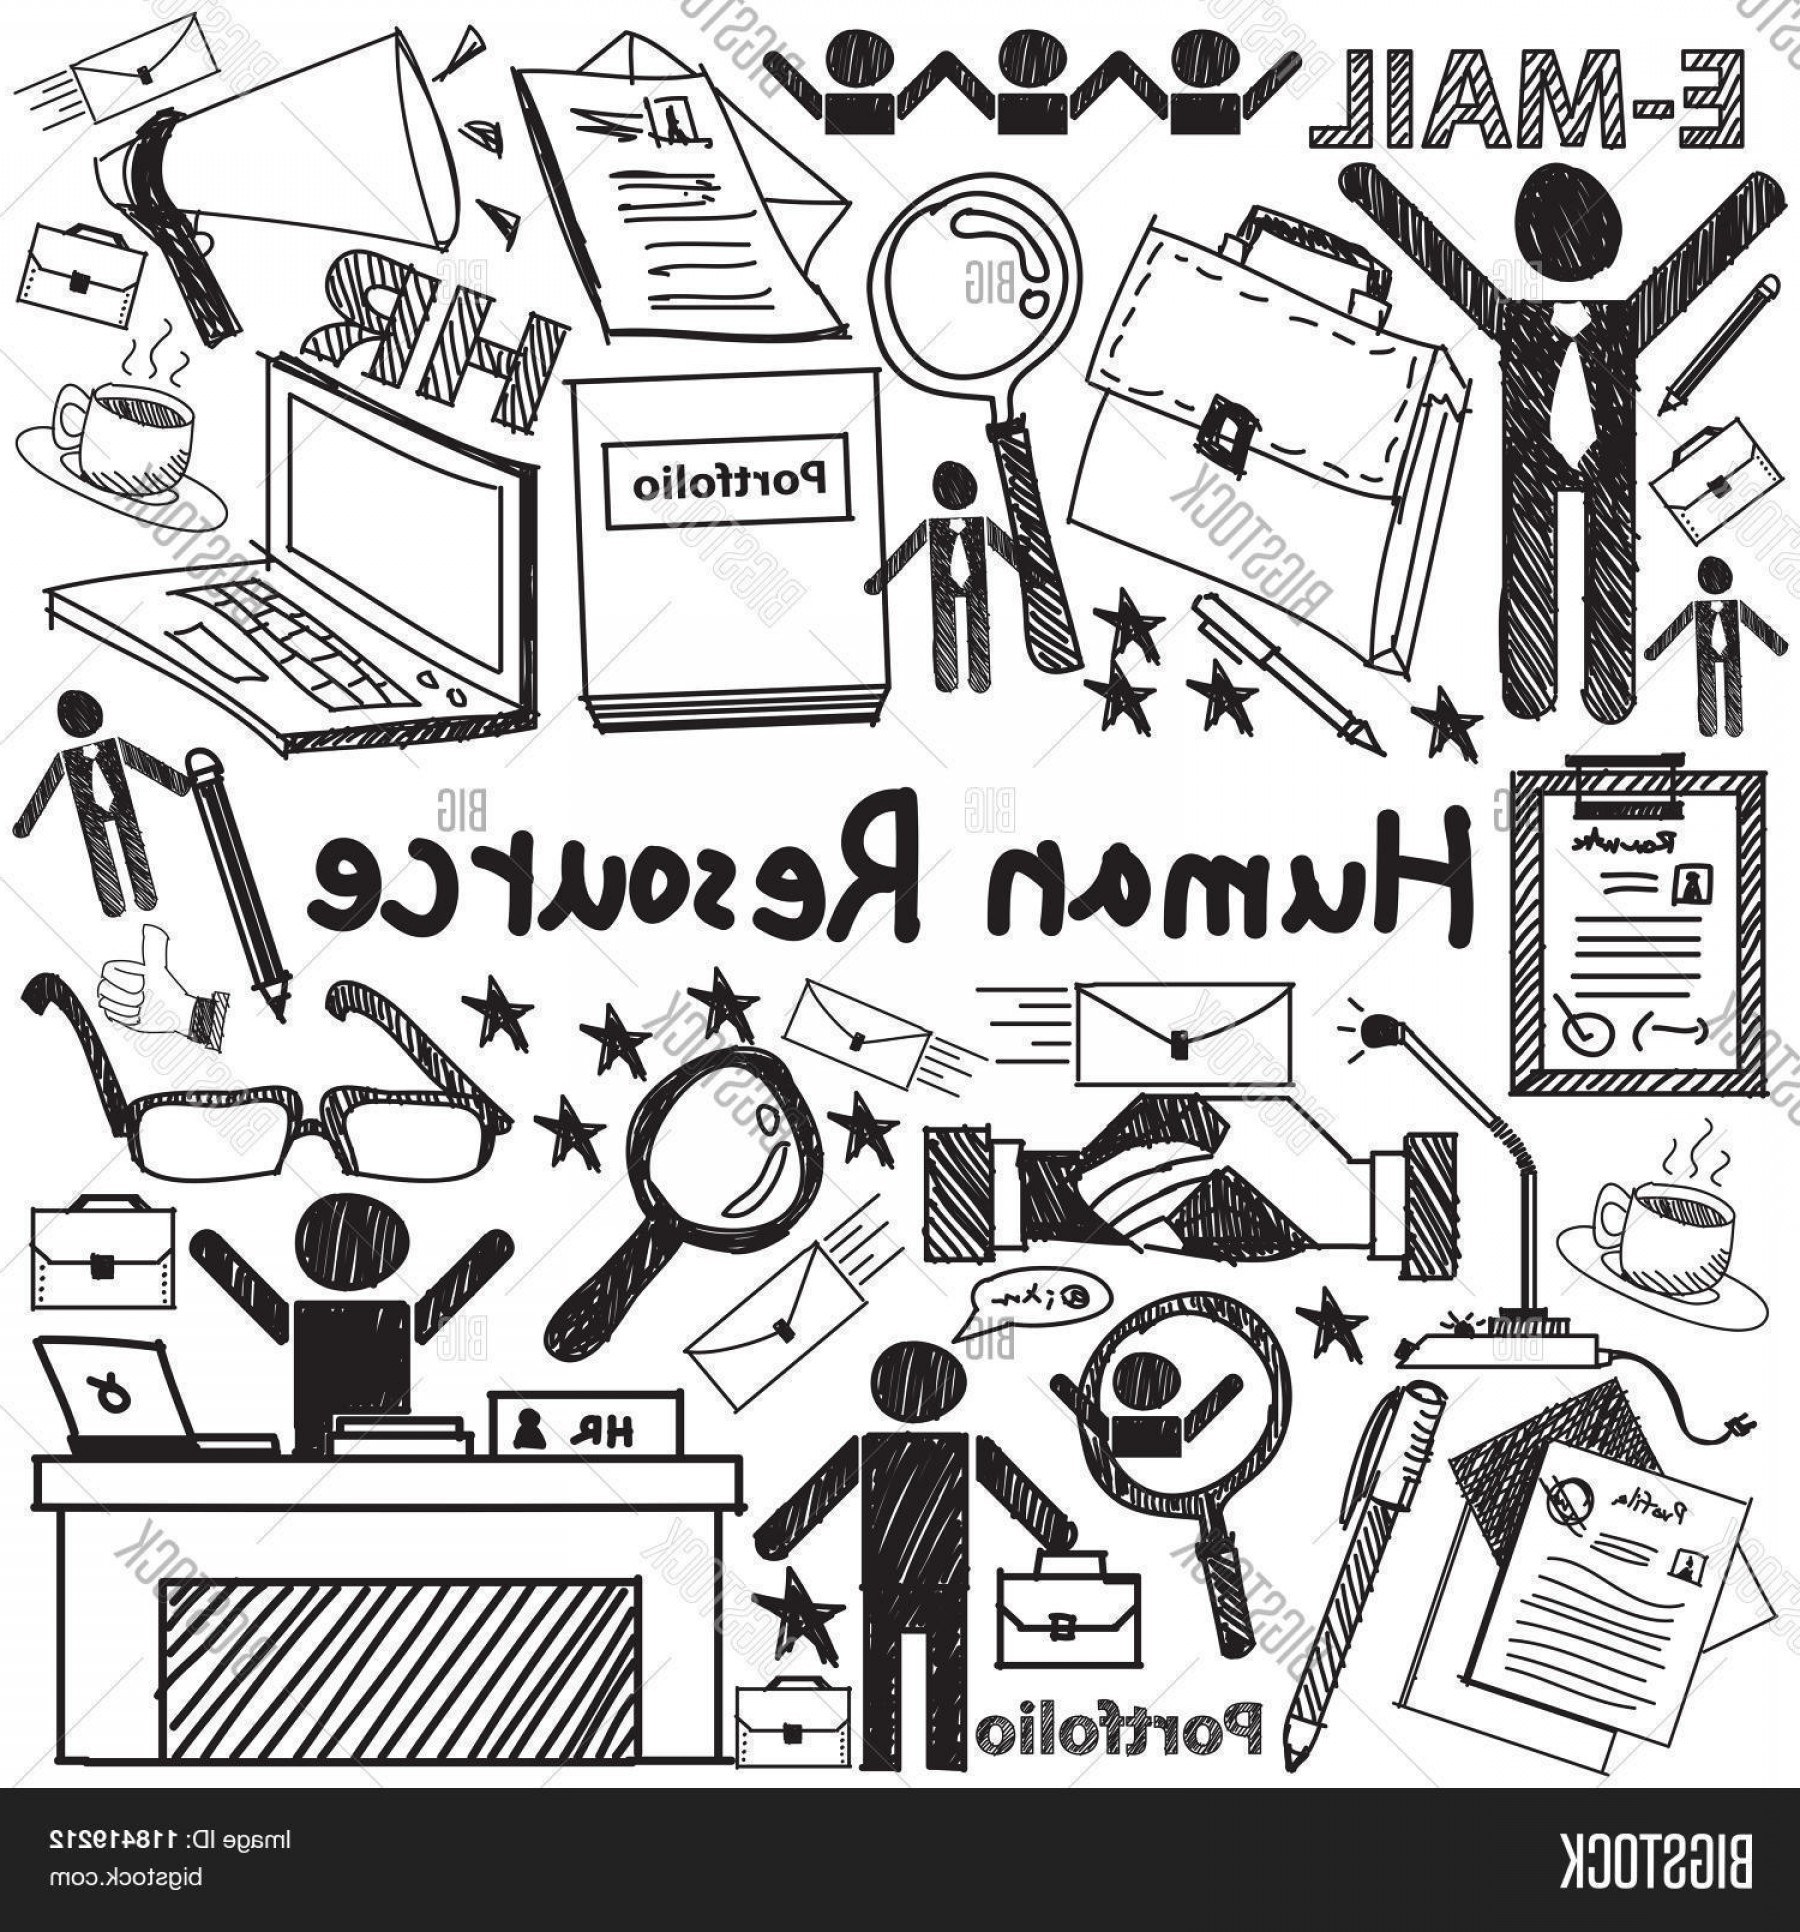 Vector Black And White Organization: Stock Vector Human Resource Management In Organization Handwriting Doodle Icon Sketch Sign And Symbol In White Is